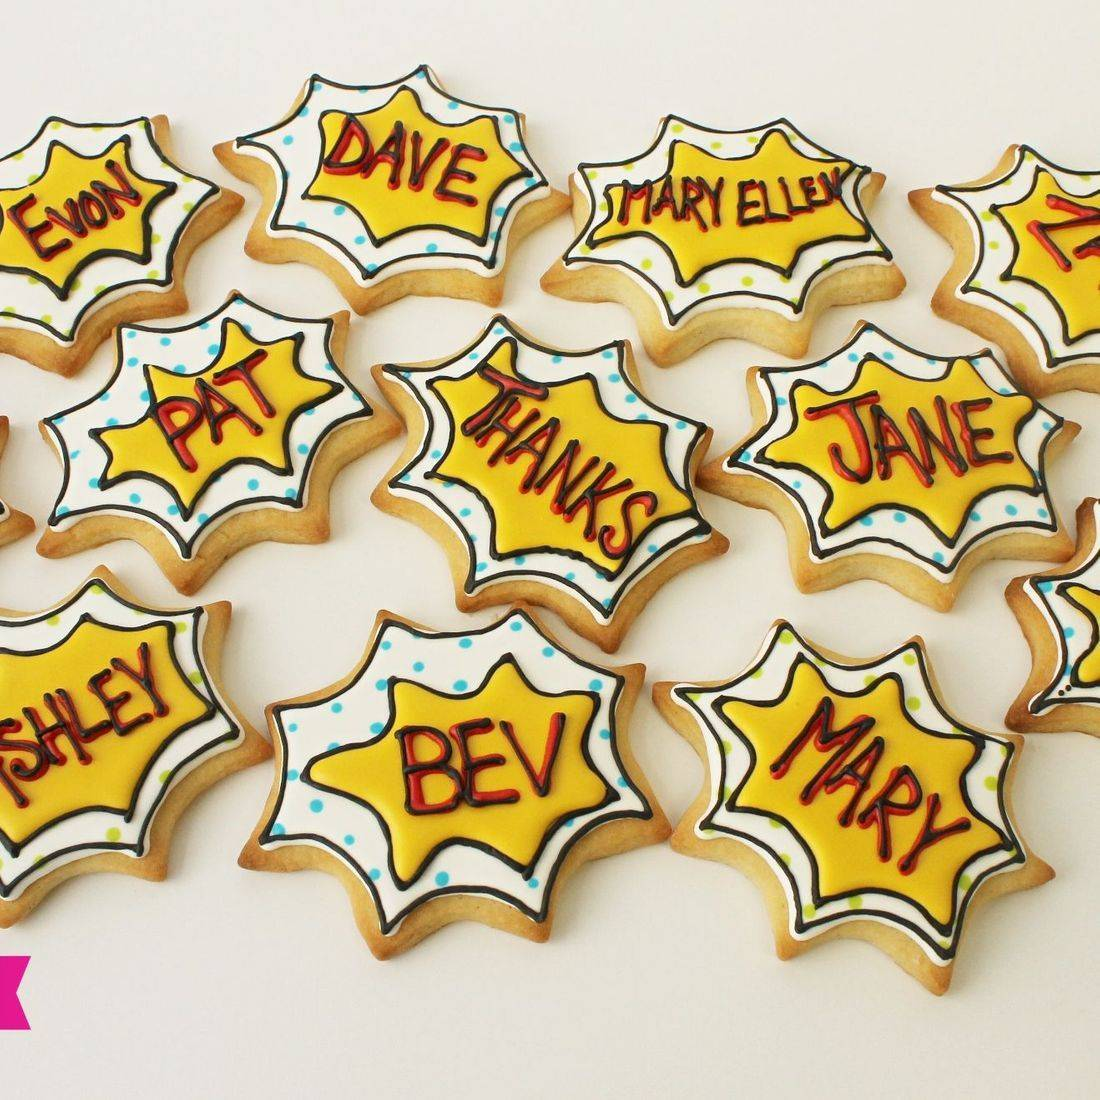 Super Hero Name Cookies Milwaukee